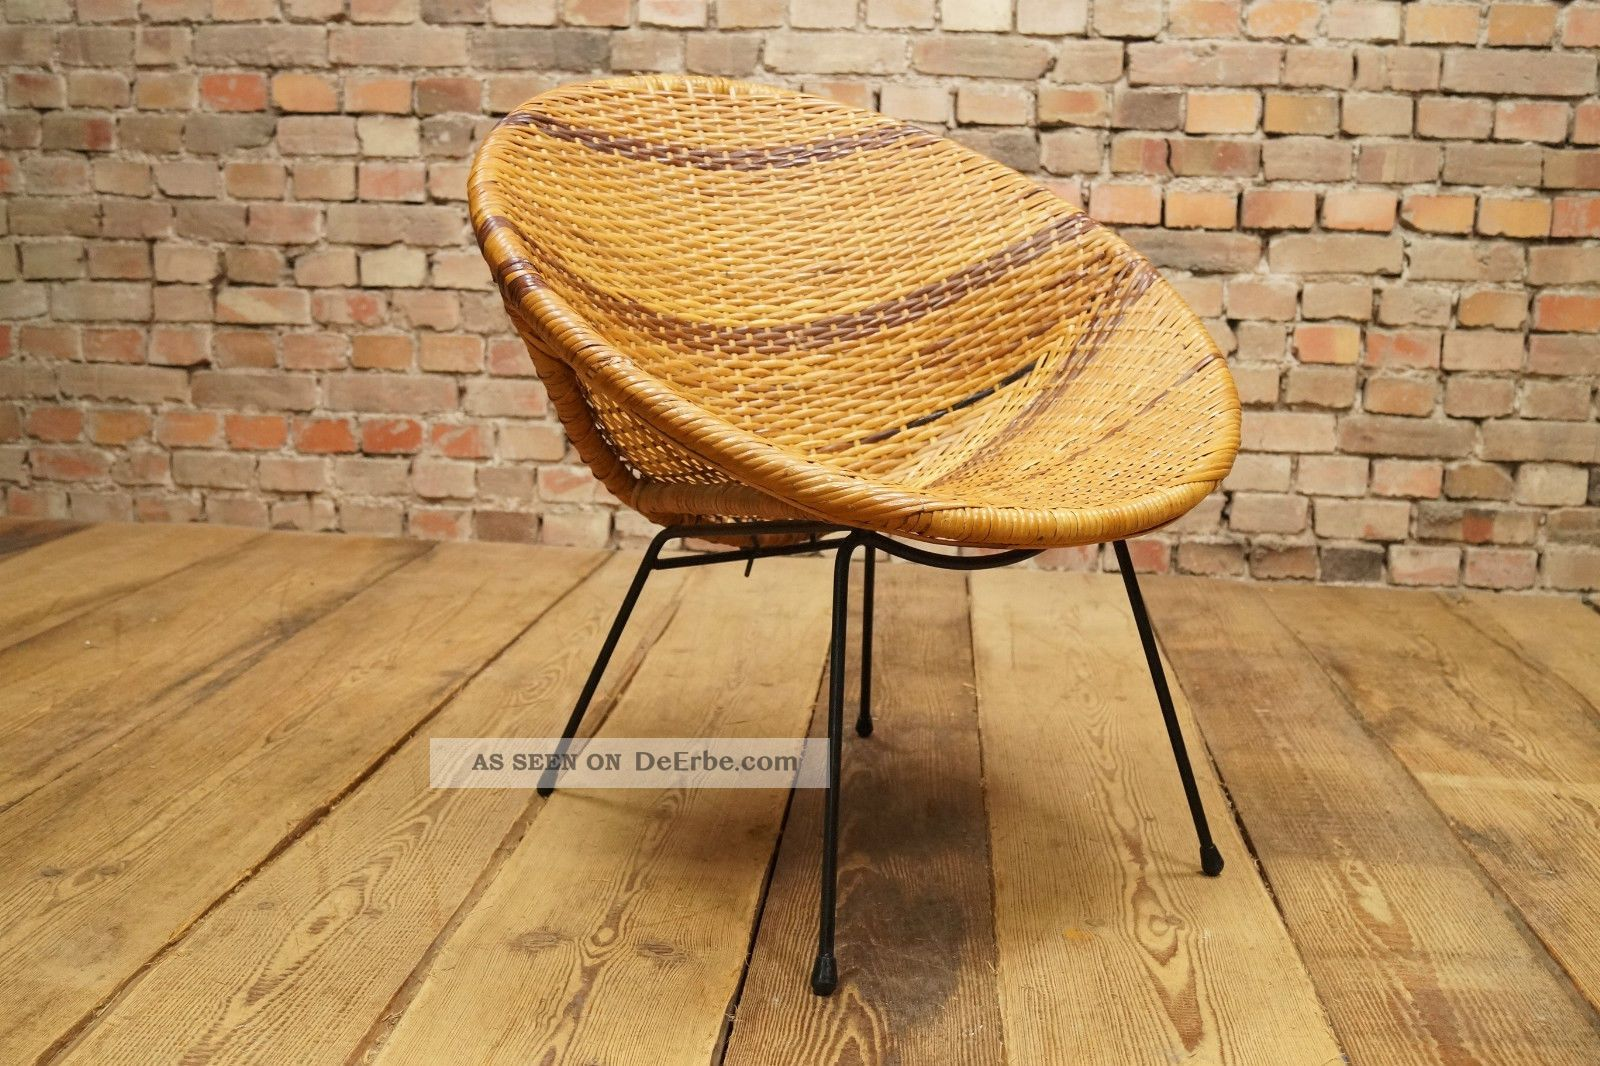 60s basket chair designer stuhl sessel korbstuhl 60er for Stuhl design 60er